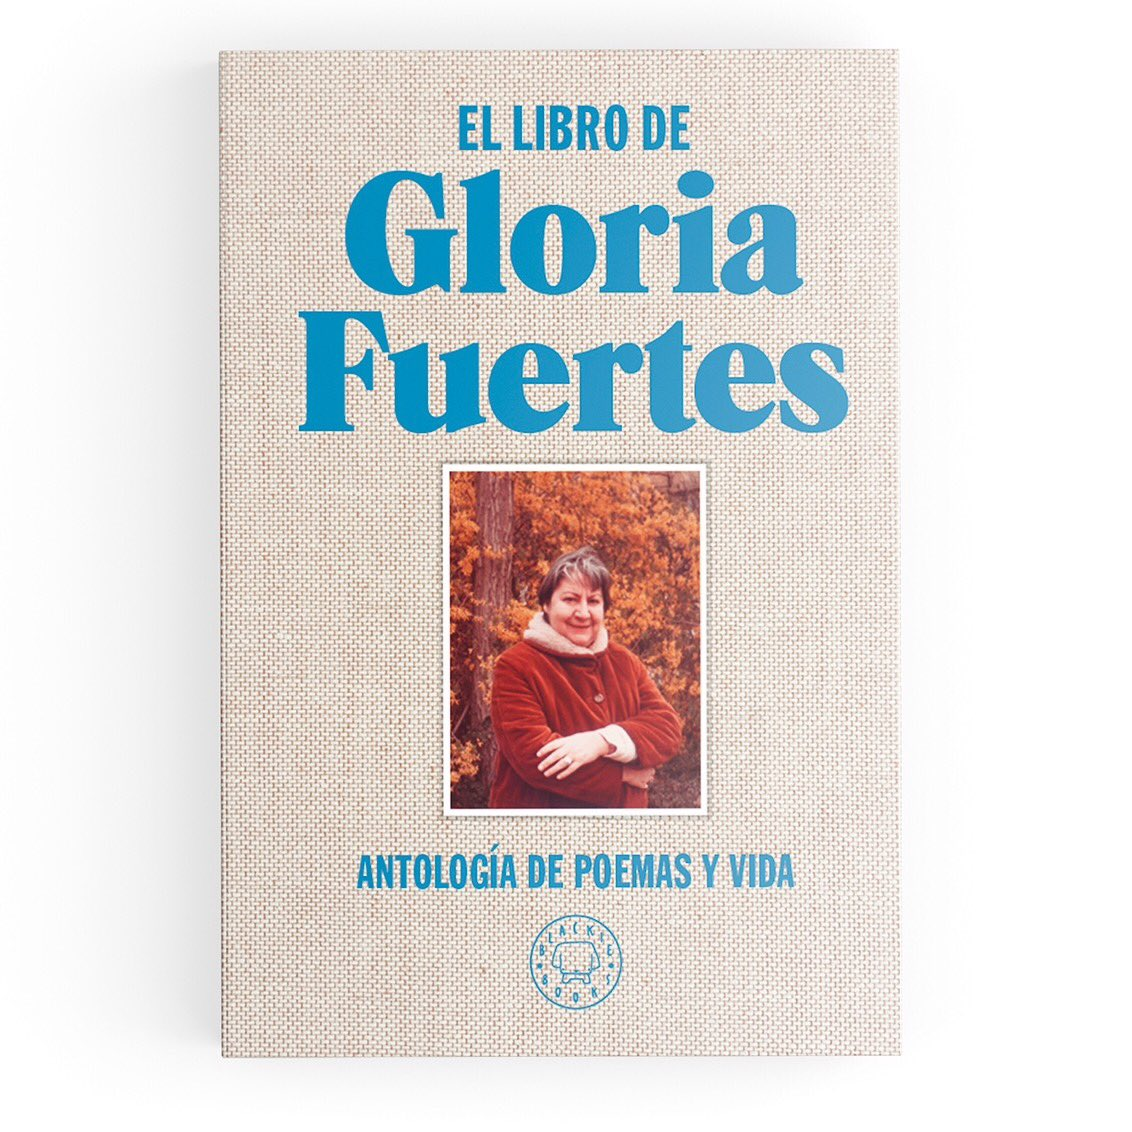 Forget To Remember Libro Blackie Books On Twitter Quotel Libro De Gloria Fuertes